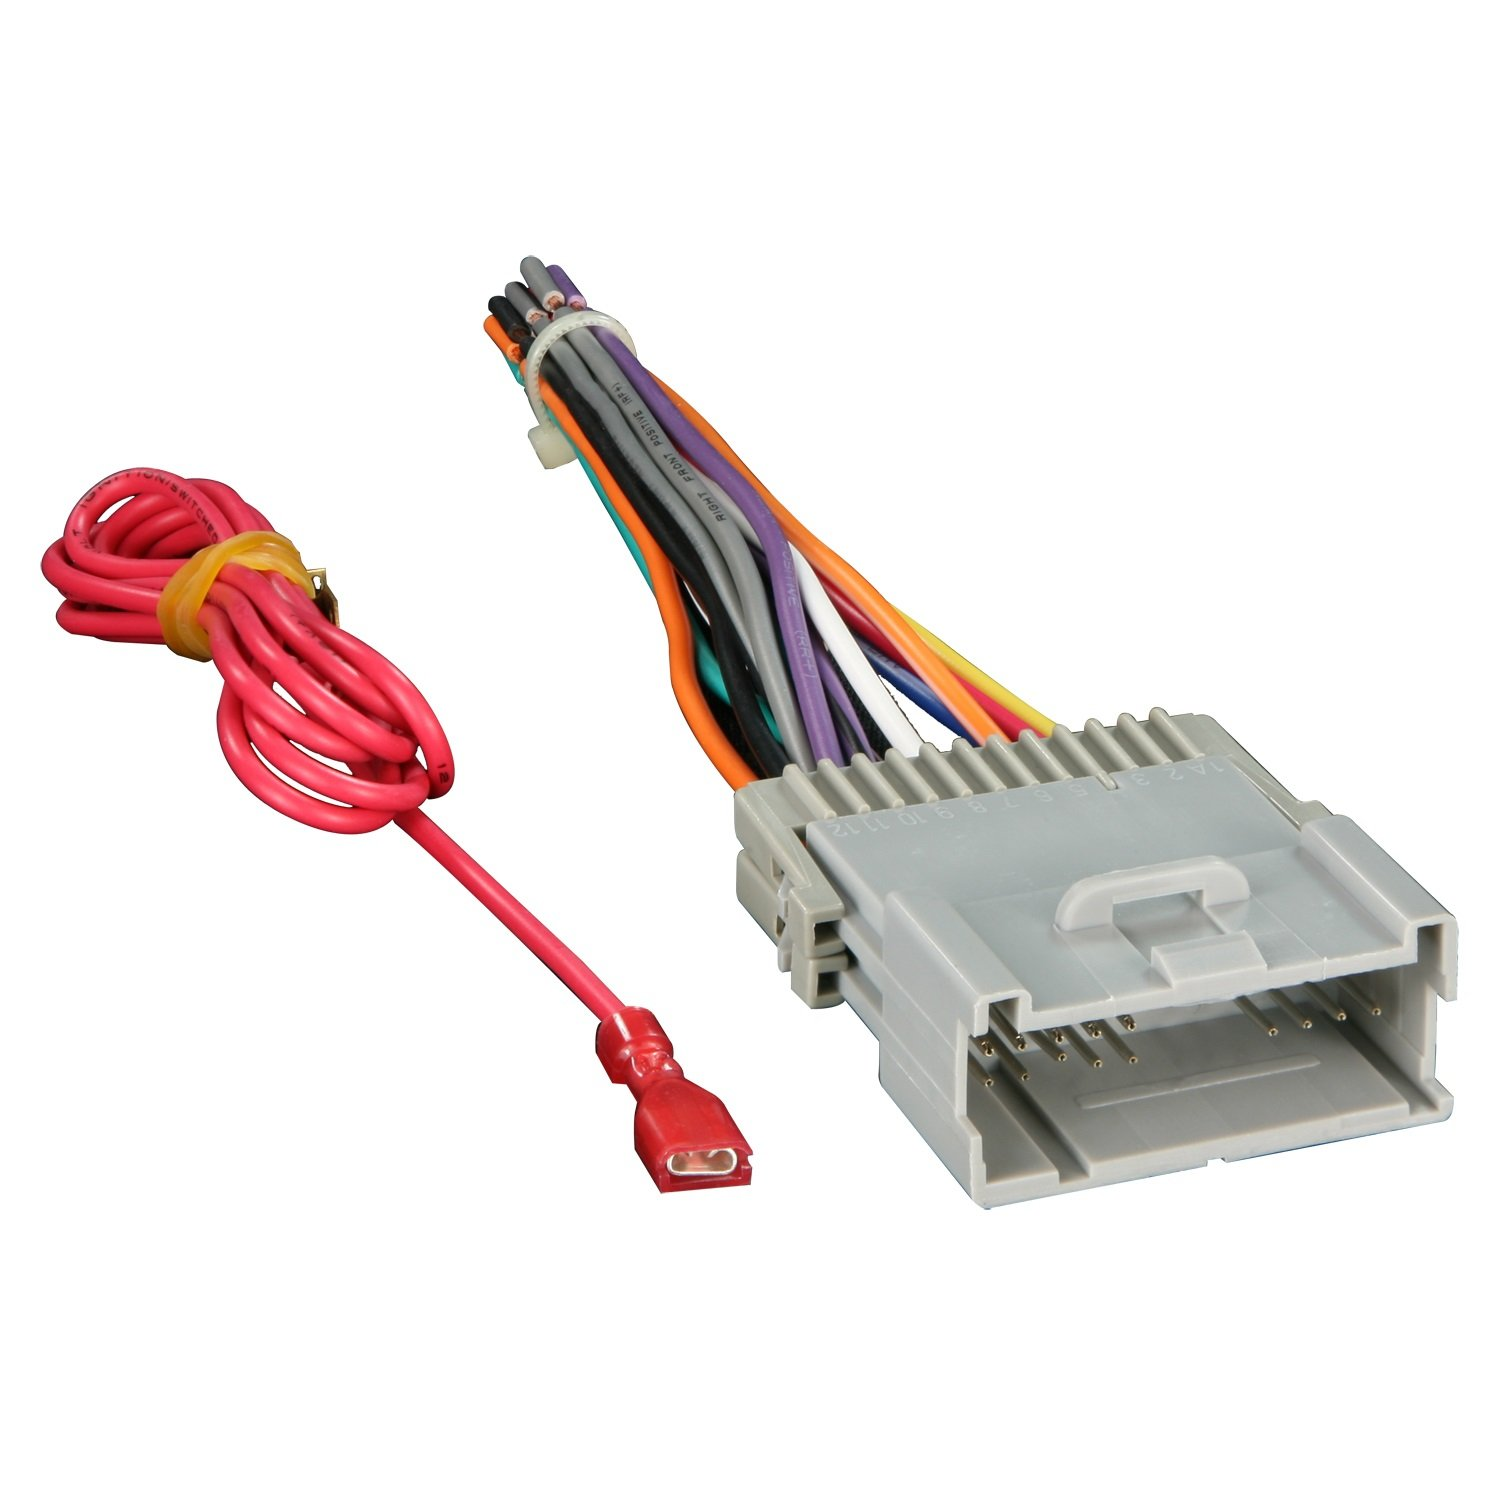 61eewxp9orL._SL1500_ amazon com metra 70 2003 radio wiring harness for gm 98 08 wiring harness adapter at fashall.co